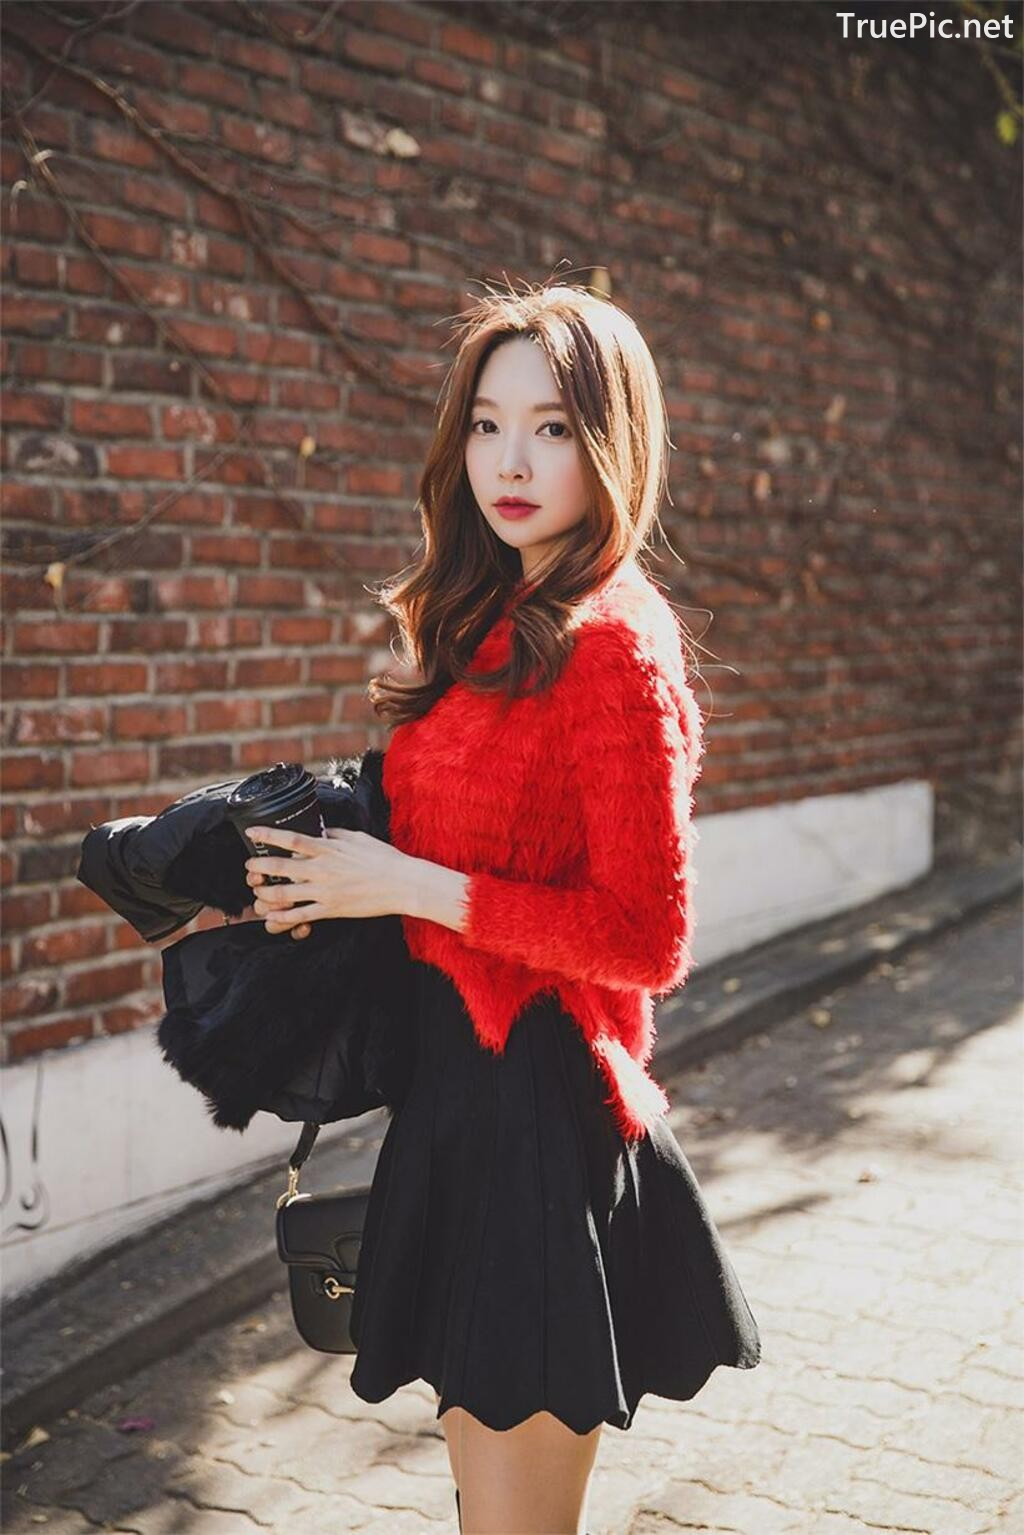 Image-Korean-Fashion-Model-Park-Soo-Yeon-Beautiful-Winter-Dress-Collection-TruePic.net- Picture-7